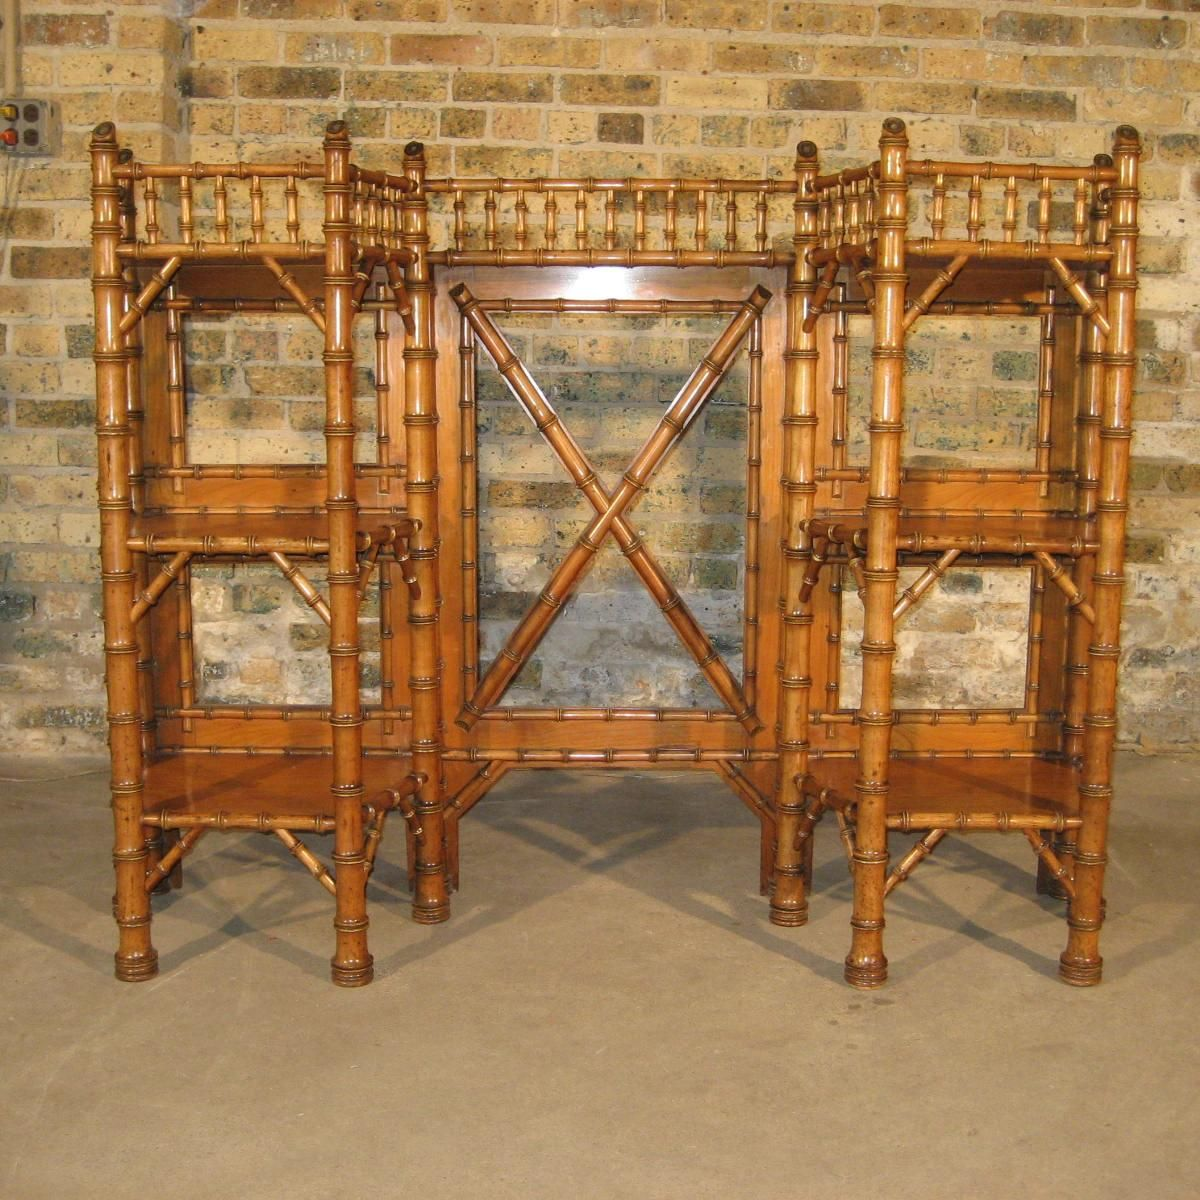 rattan and bamboo furniture also are products of asian origin and have